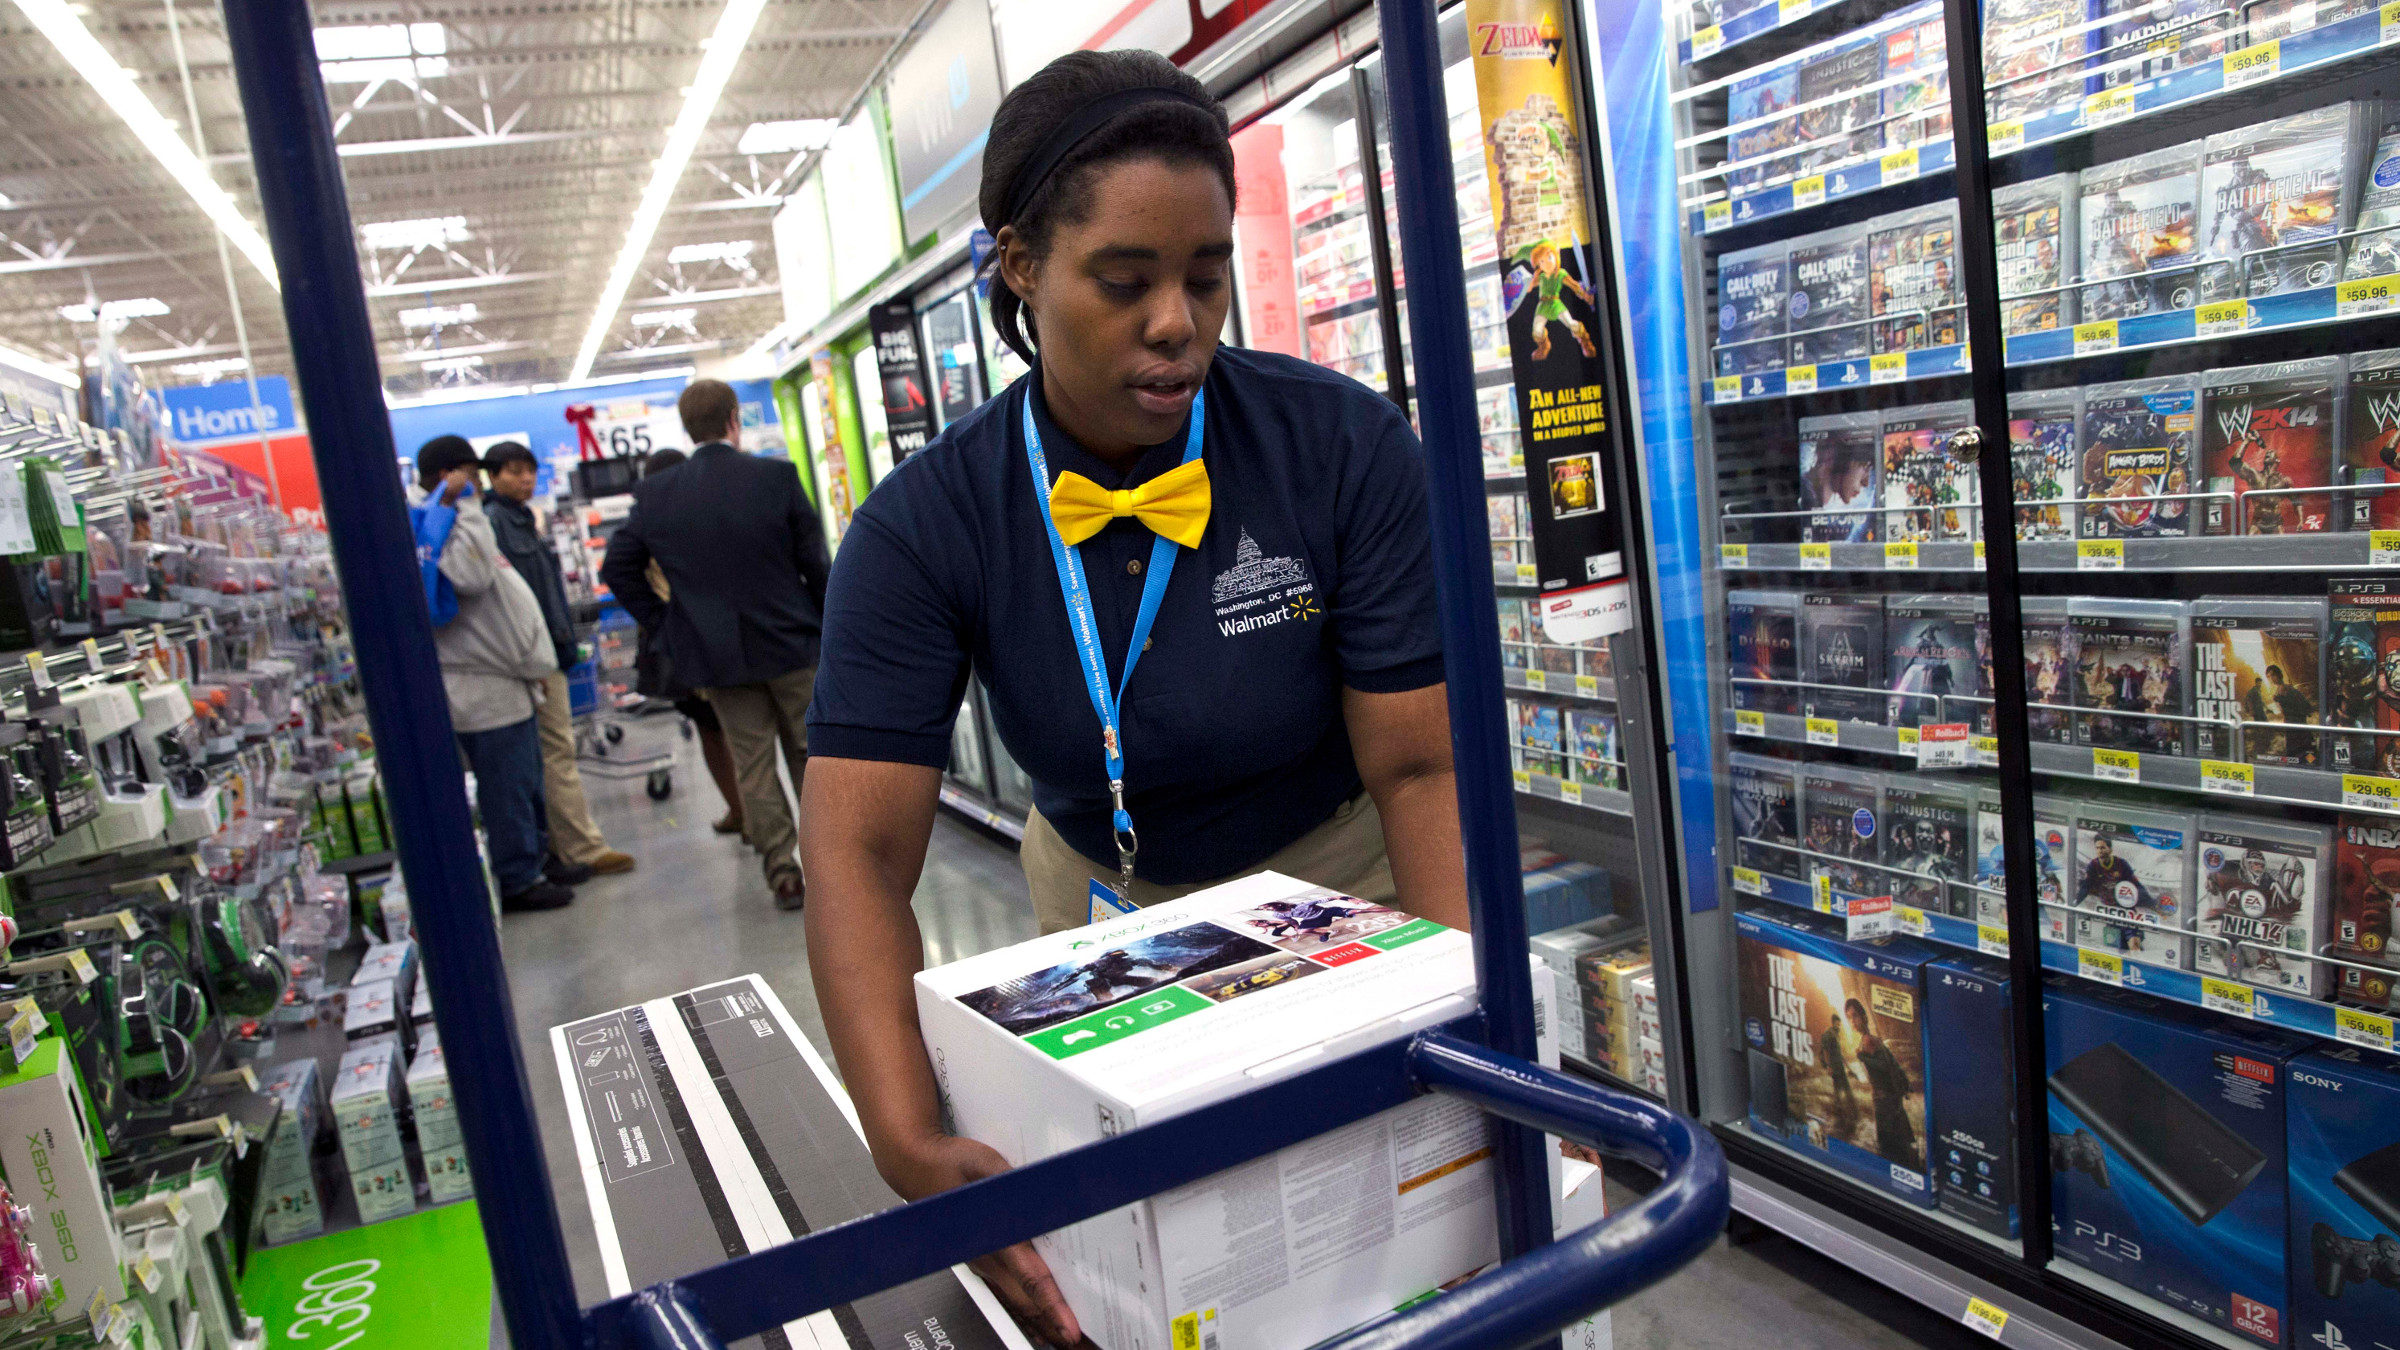 In this Wednesday, Dec. 4, 2013, photo, Tracey Anderson, 26, re-stocks X-Box sets on opening day of a new Wal-Mart on Georgia Avenue Northwest in Washington. Wal-Mart said Friday, Jan. 31, 2014, that its fiscal fourth-quarter and full-year adjusted earnings from continuing operations may come in at or slightly below the low end of its prior forecasts.